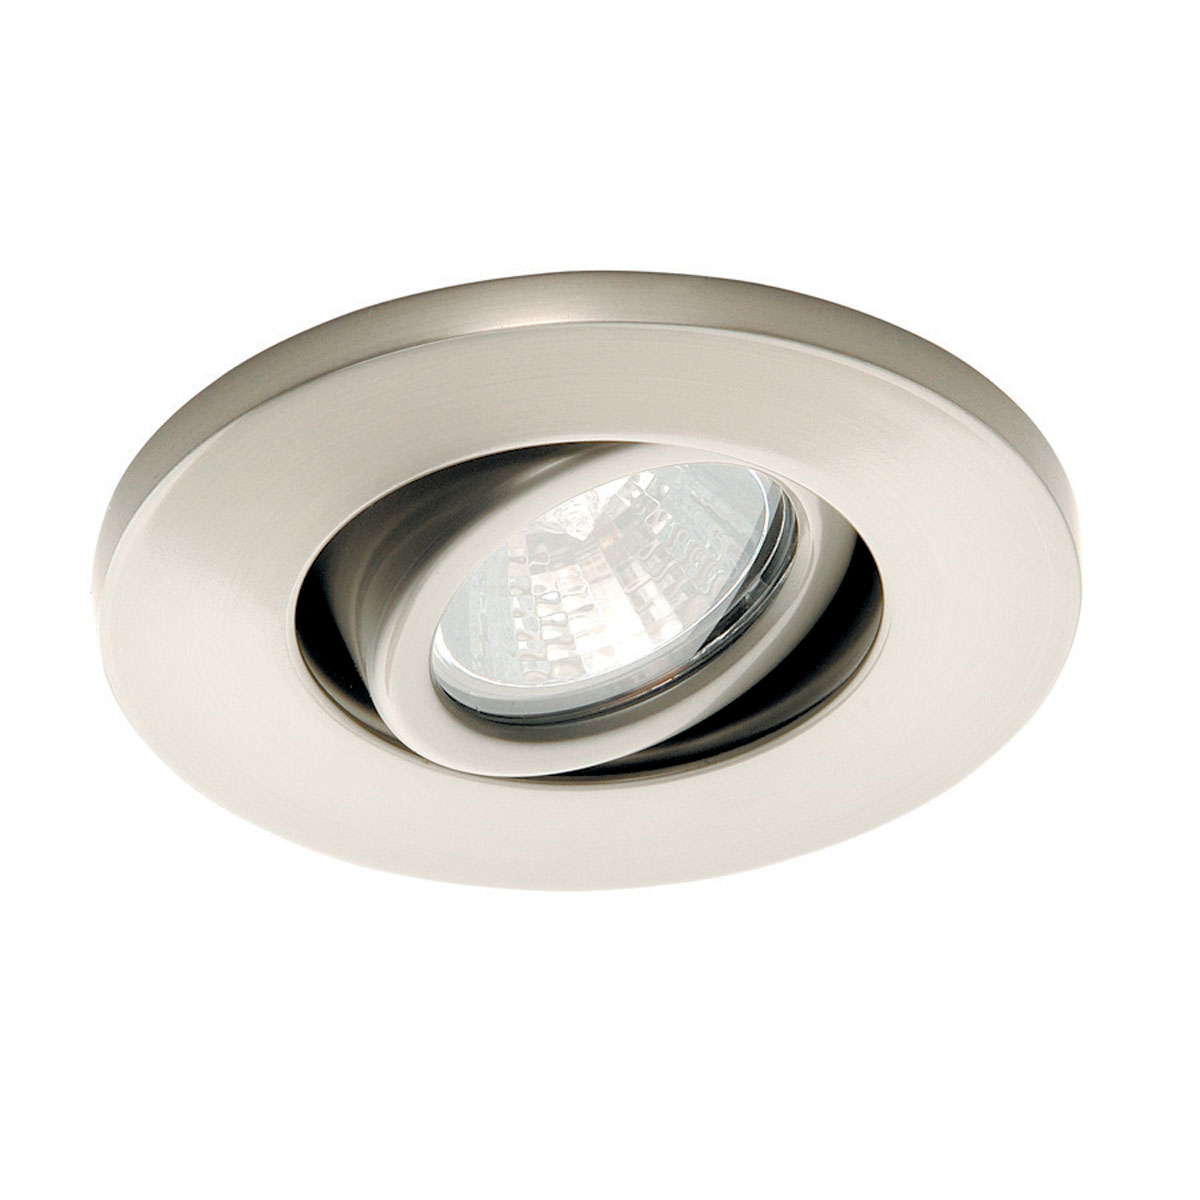 HR1137 Gimbal Ring Miniature Recessed Task Light By WAC Lighting |  HR 1137 BN